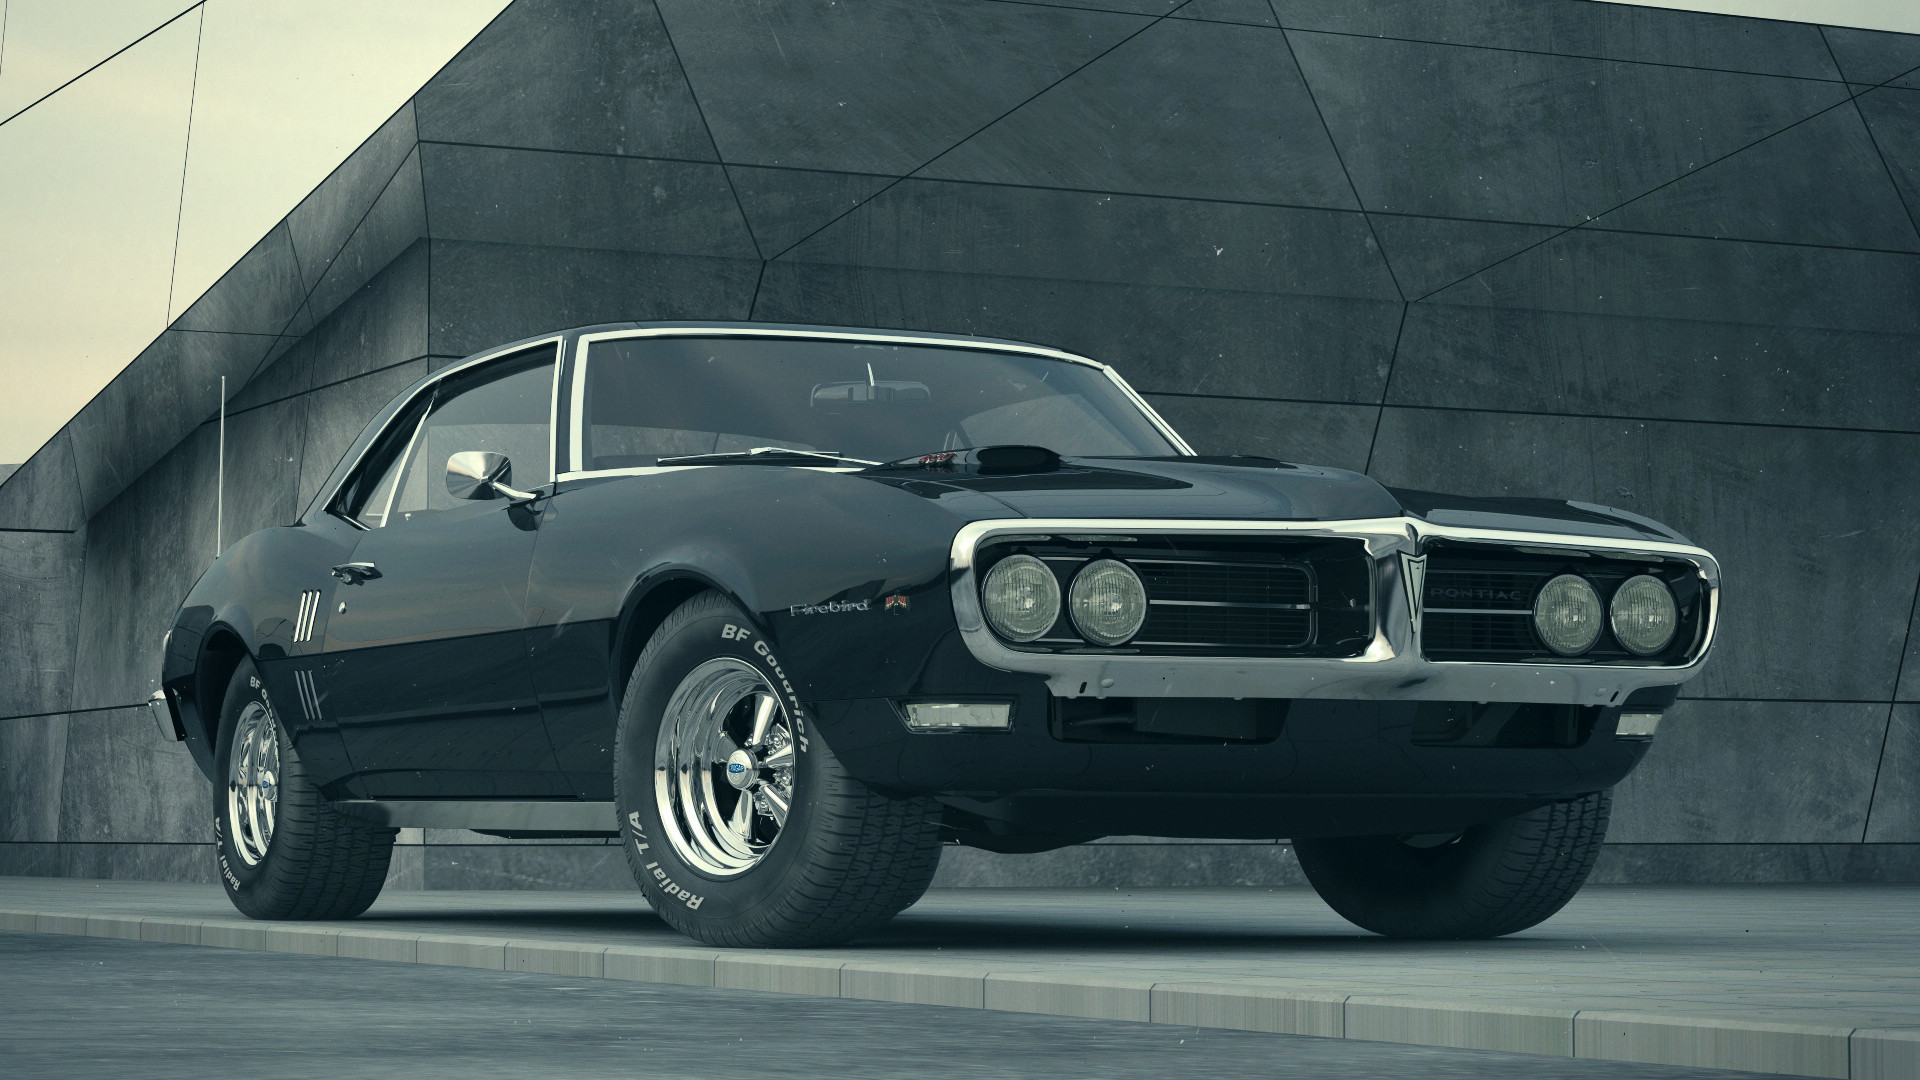 1920x1080  Pontiac Firebird 1968 Wallpaper